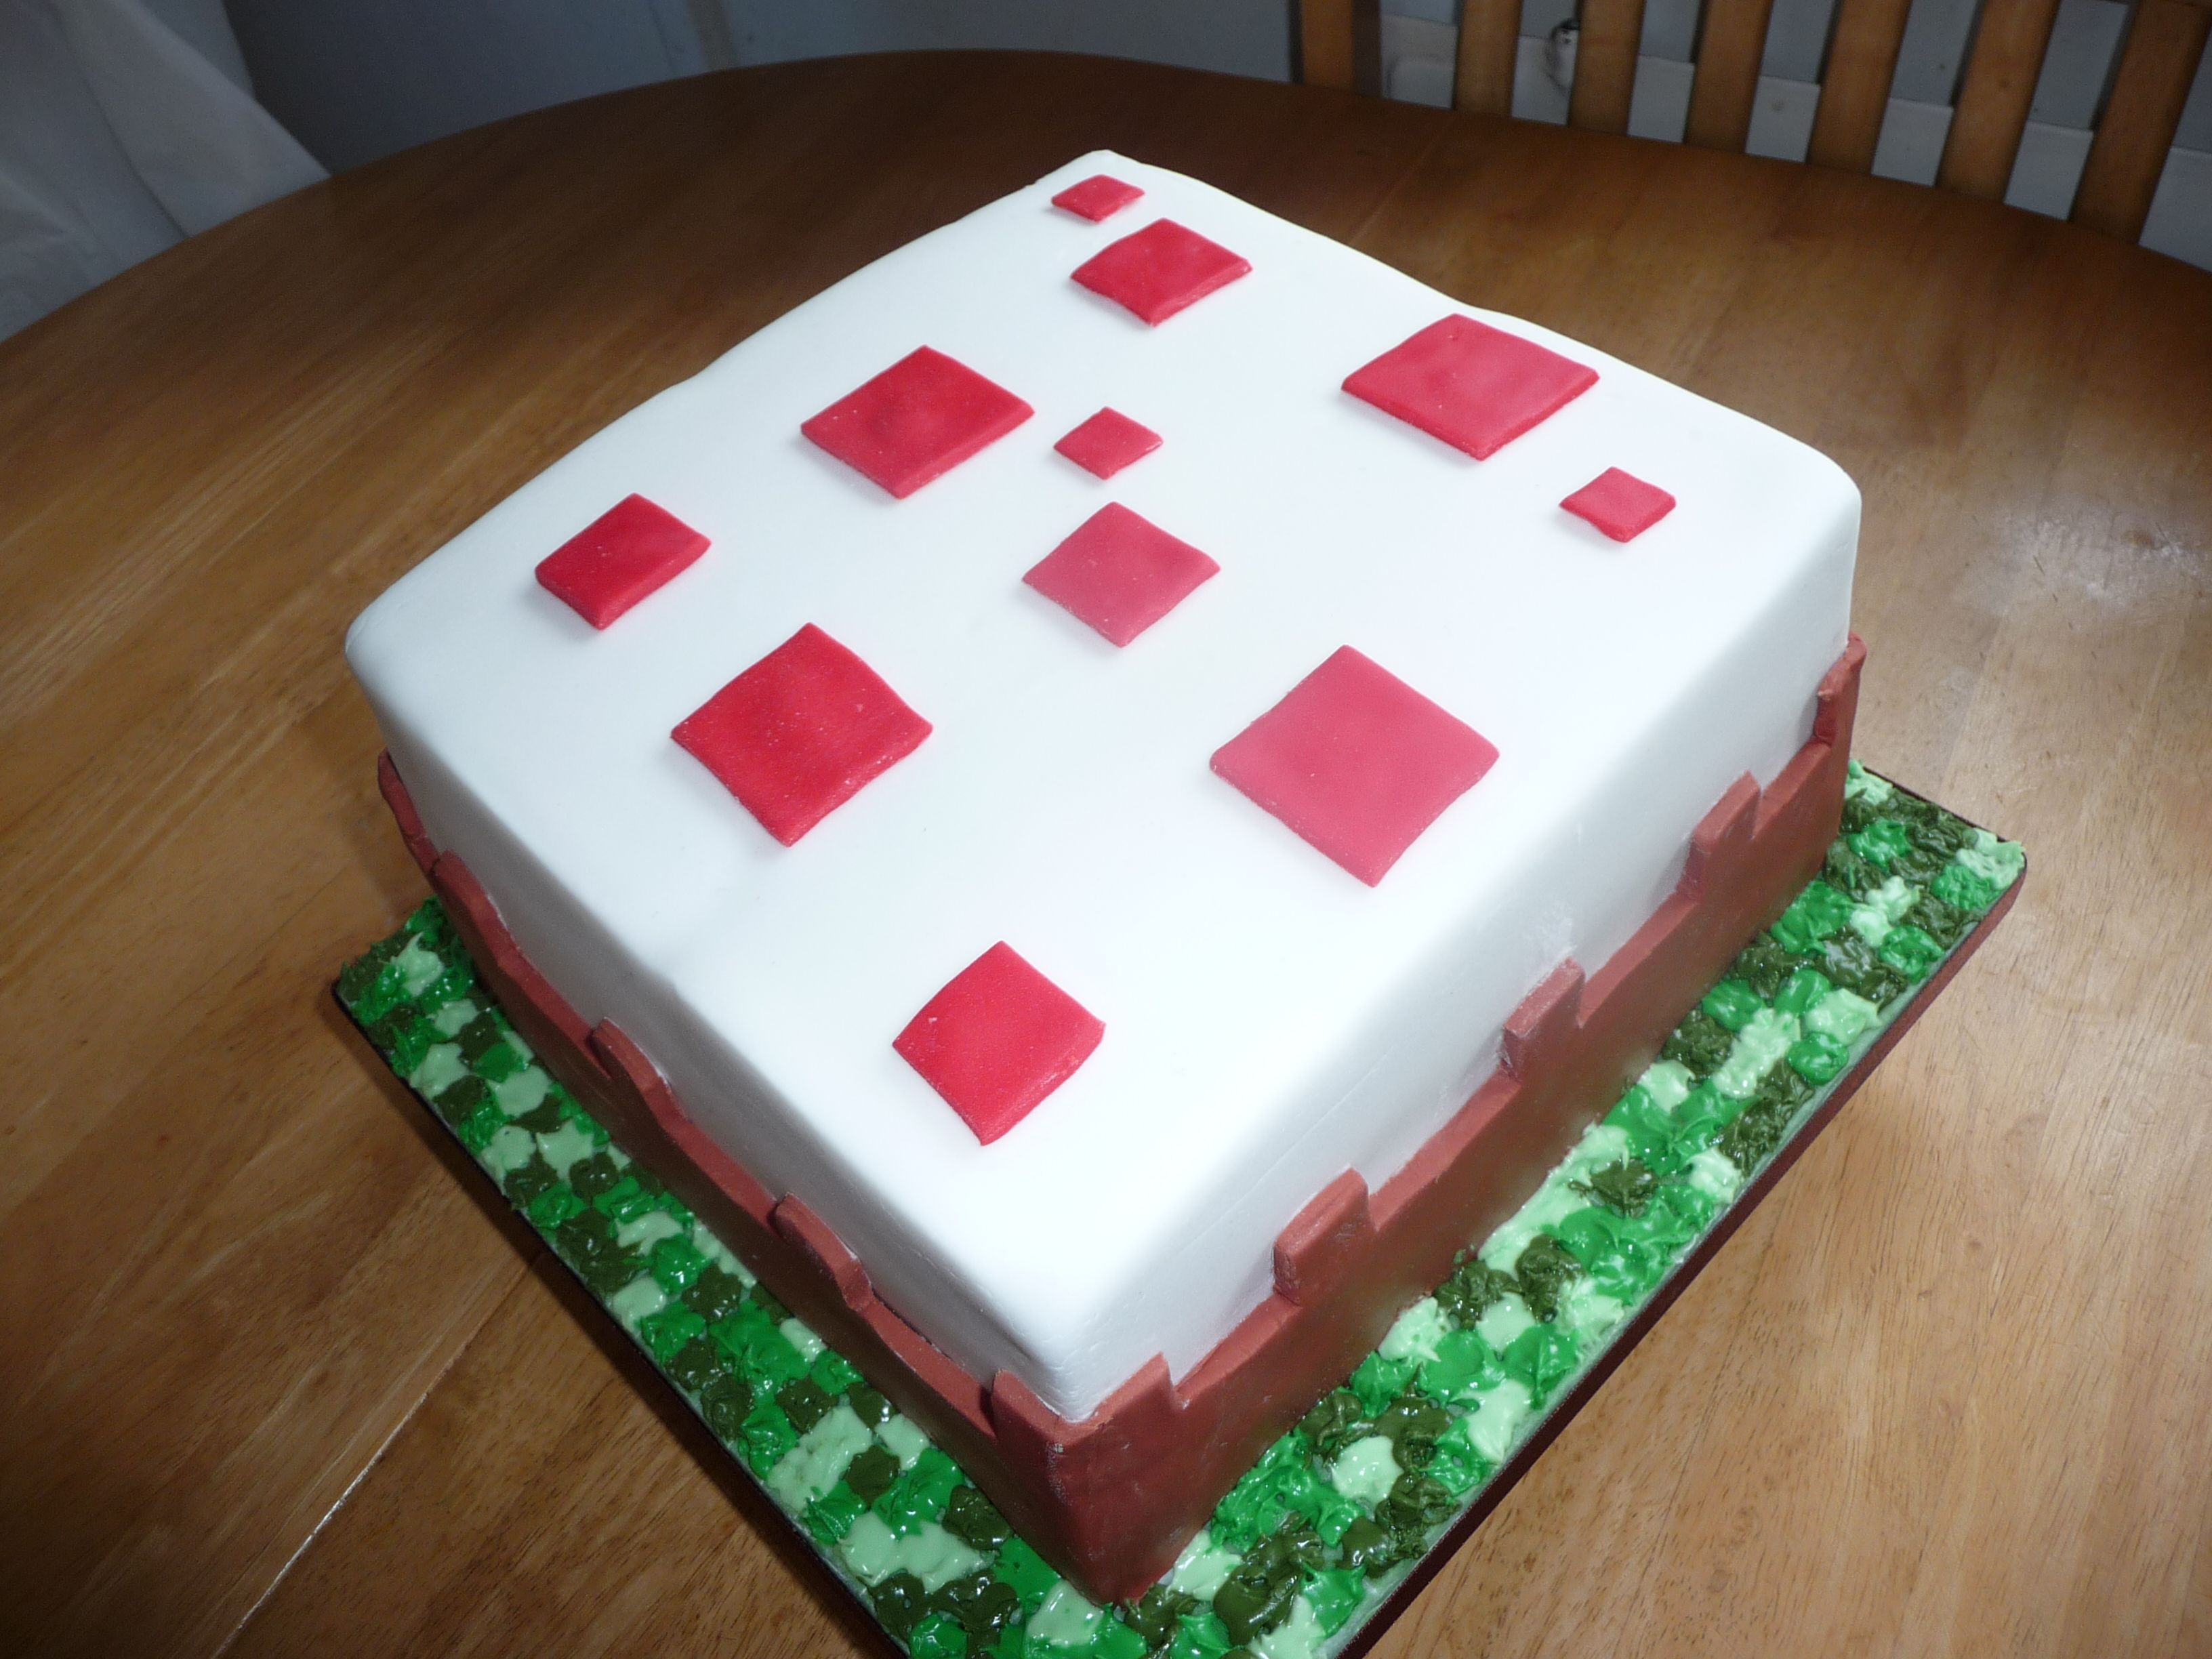 Minecraft Birthday Cake Plain Minecraft cake from the game Red